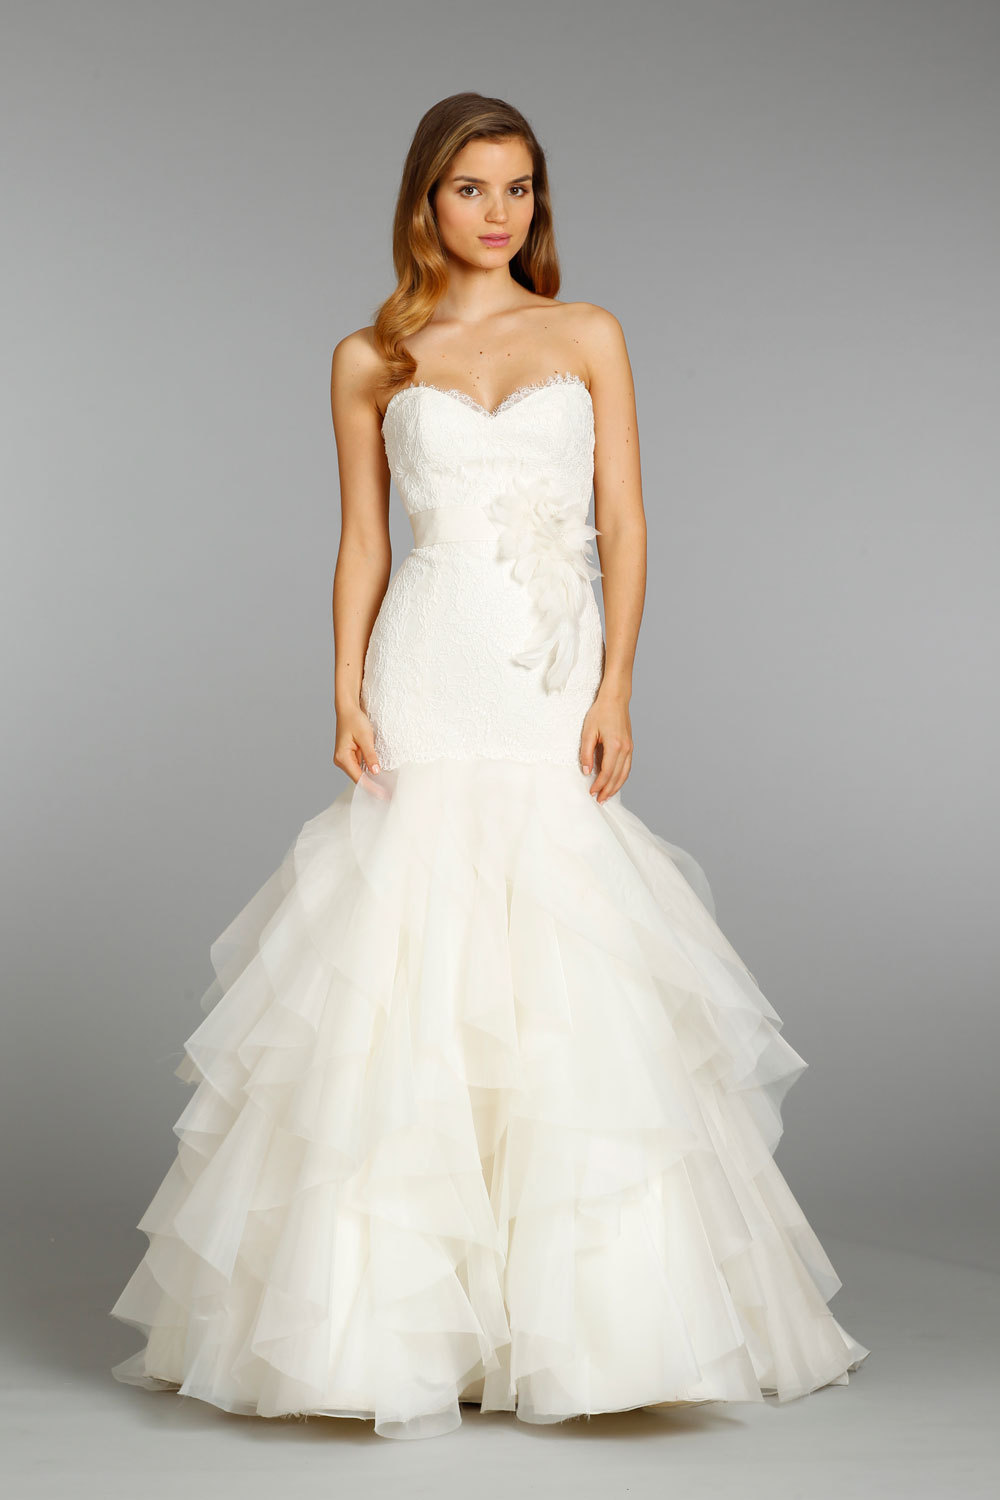 Jim hjelm wedding dress fall 2013 bridal 8356 for Jim hjelm wedding dresses